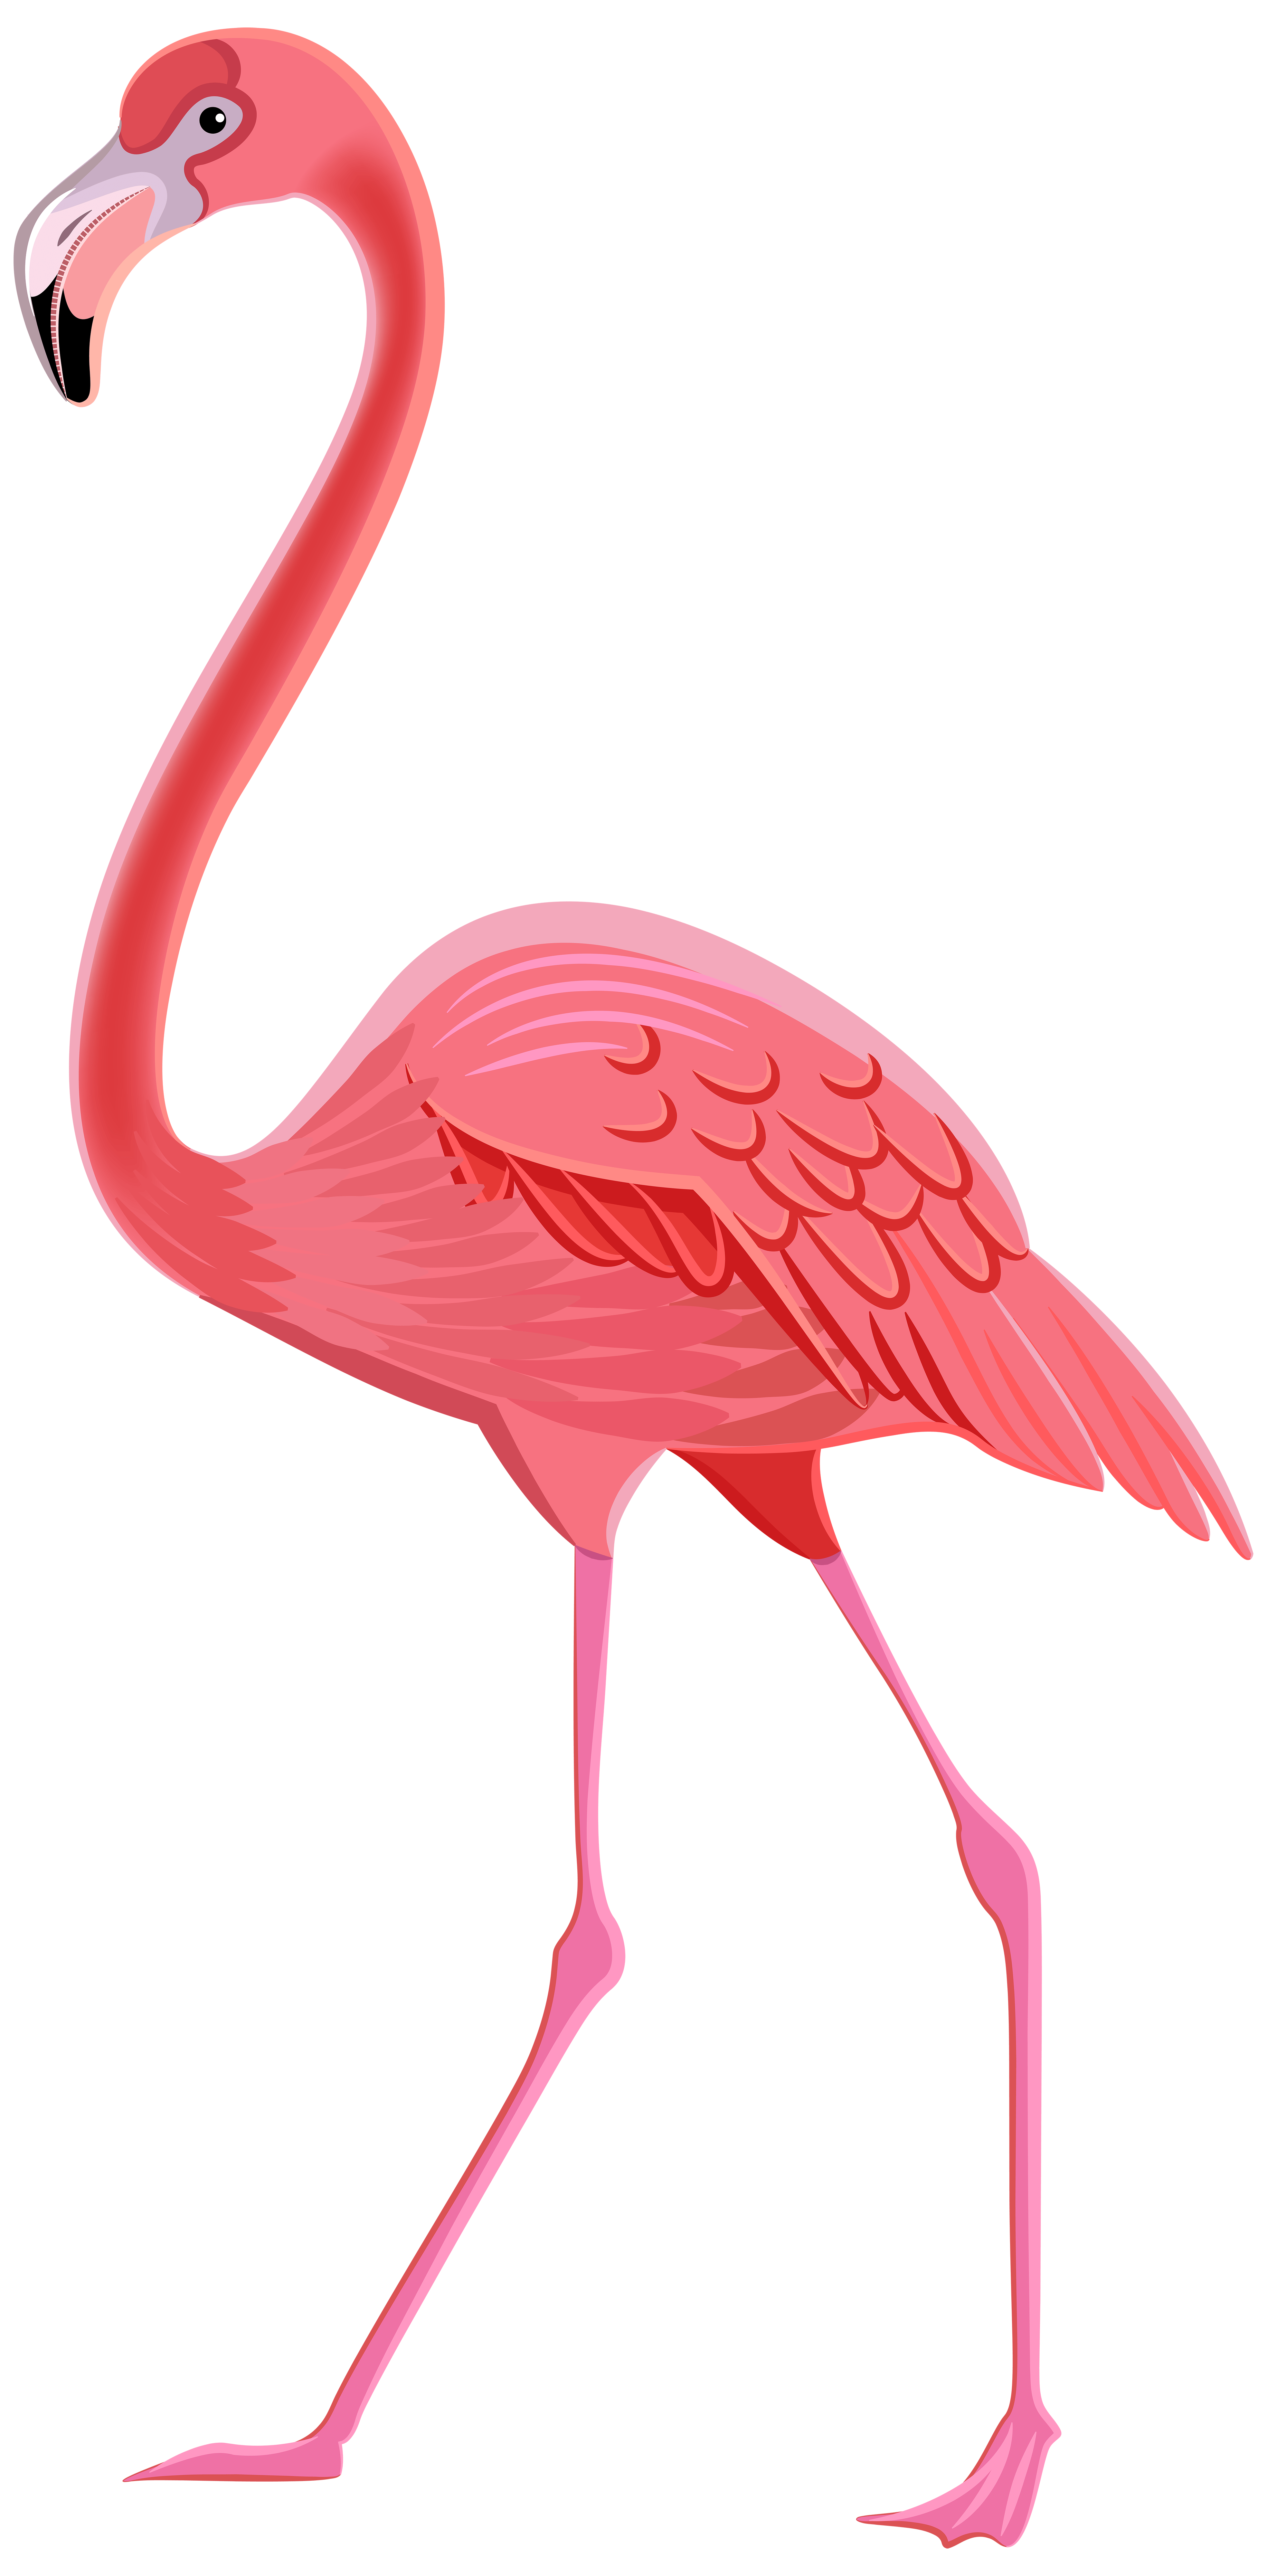 small resolution of flamingo png transparent clip art image